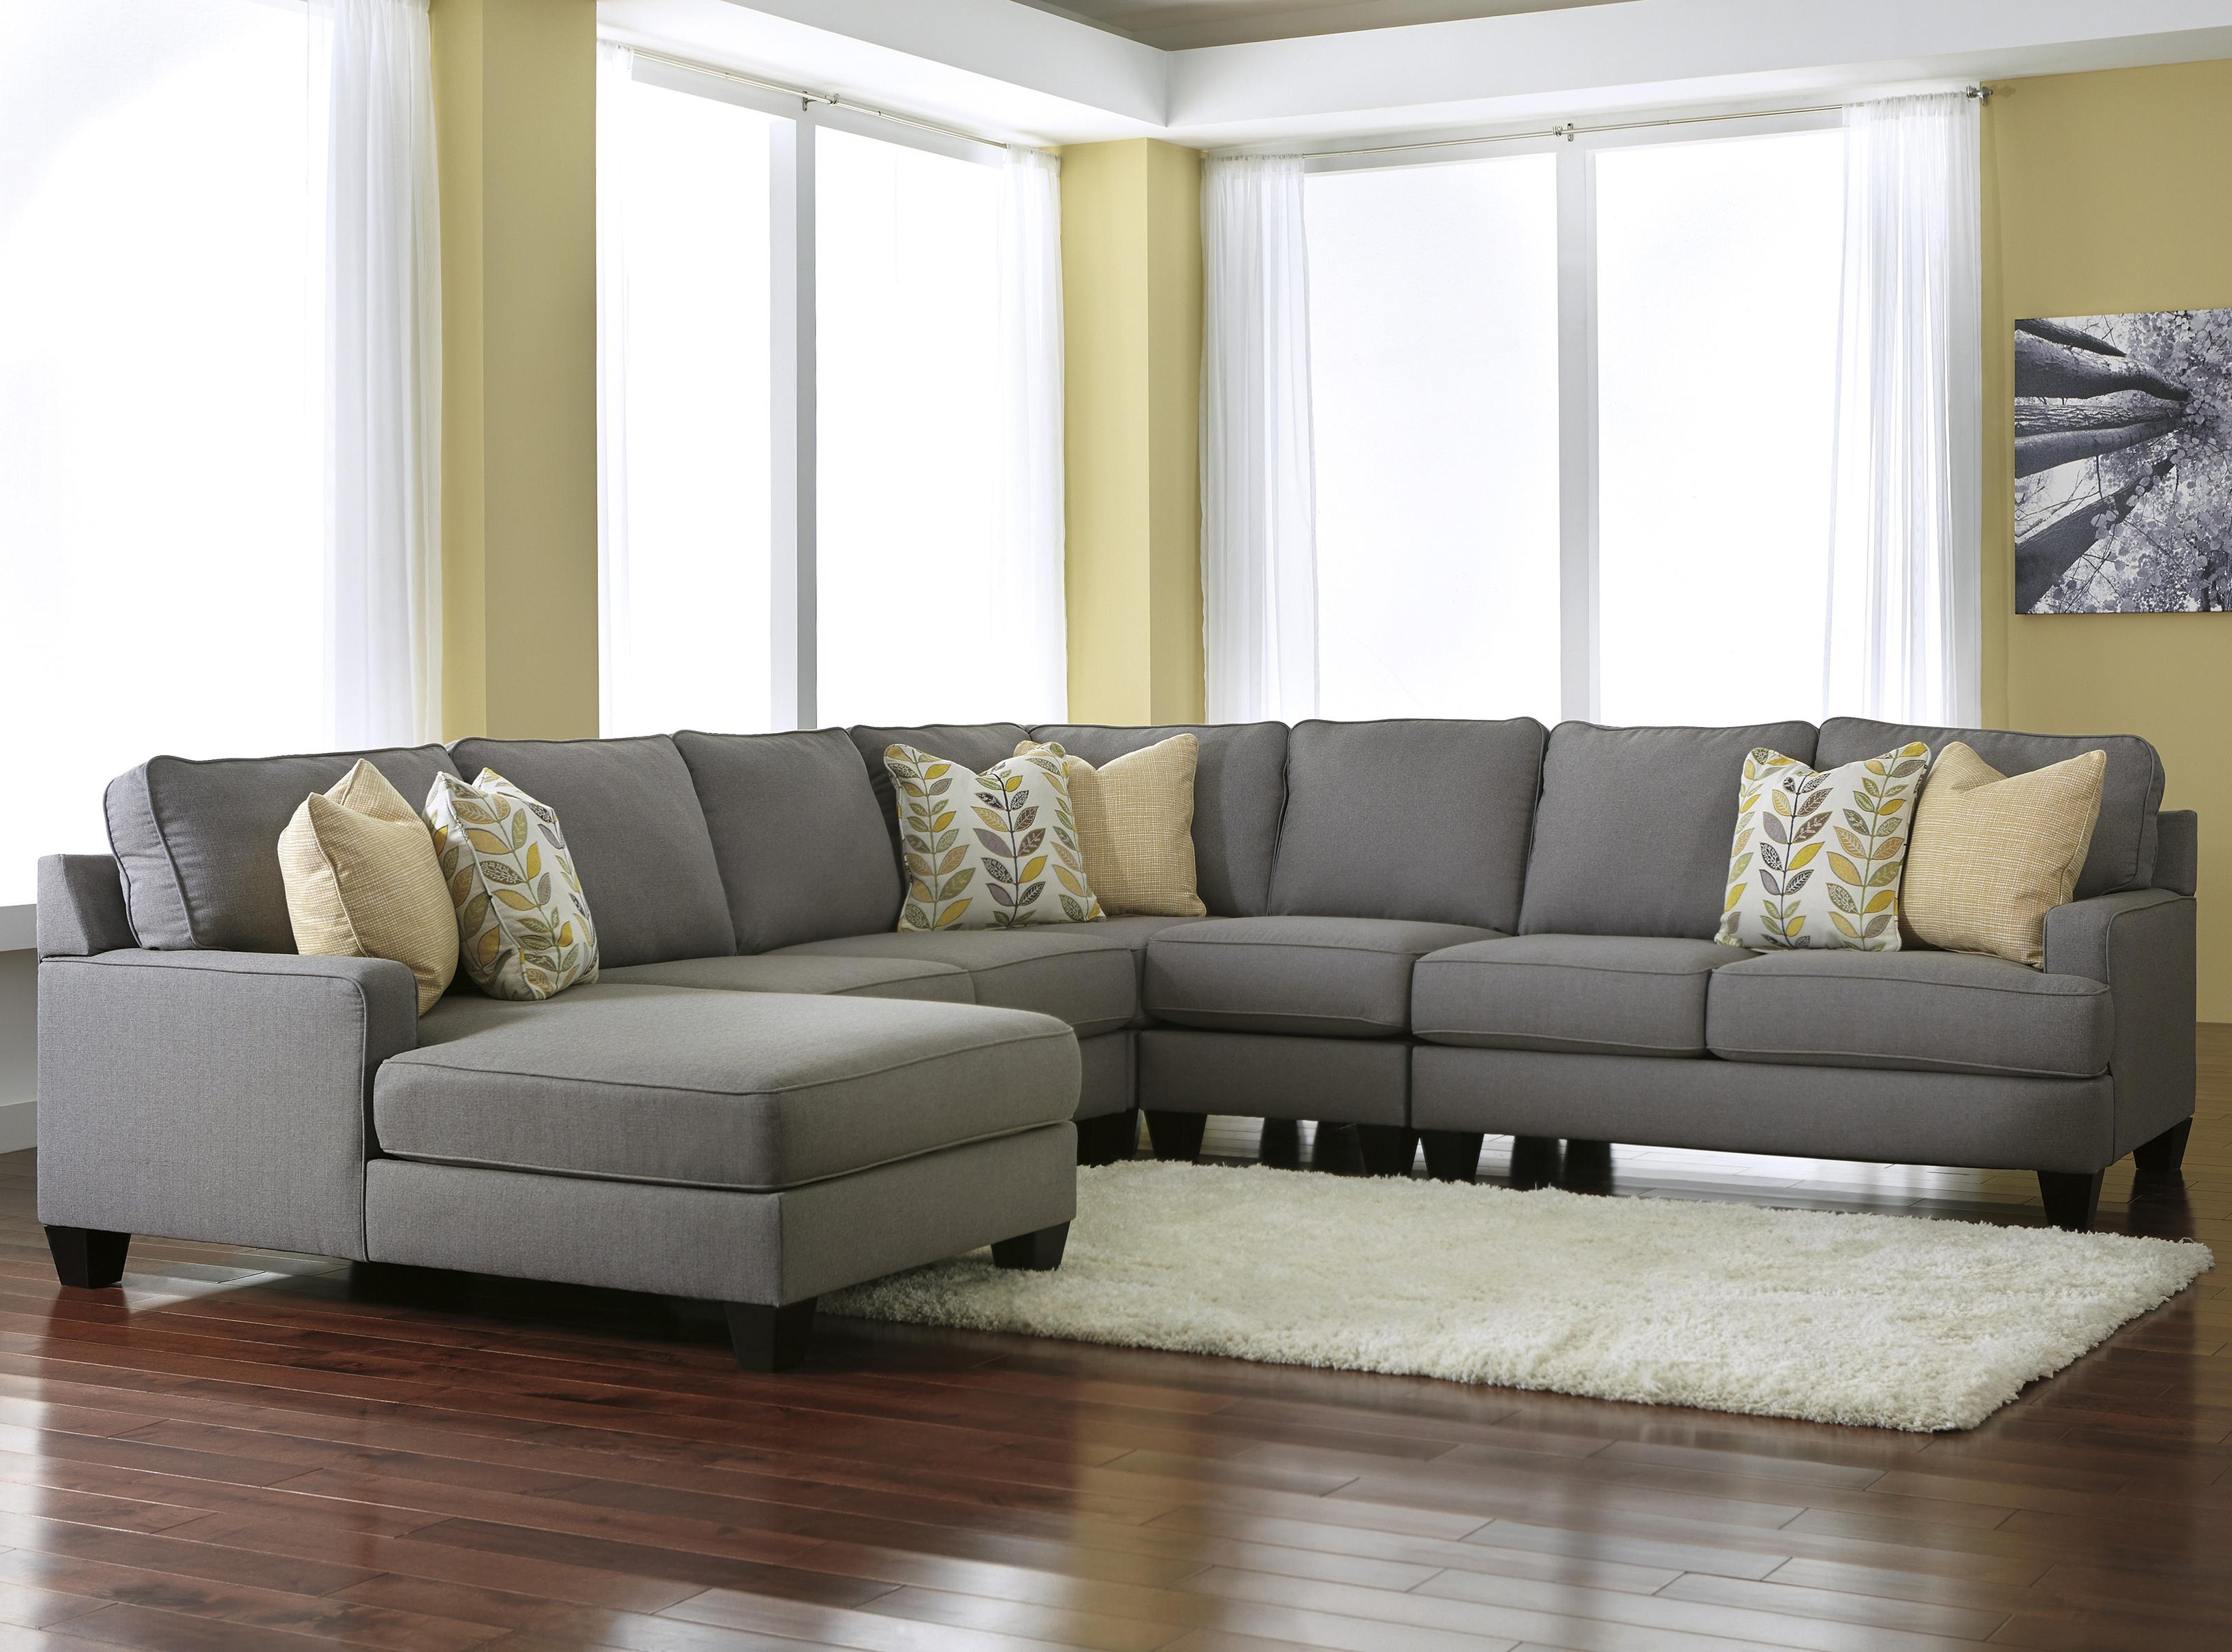 Modern 5 Piece Sectional Sofa with Left Chaise & Reversible Seat